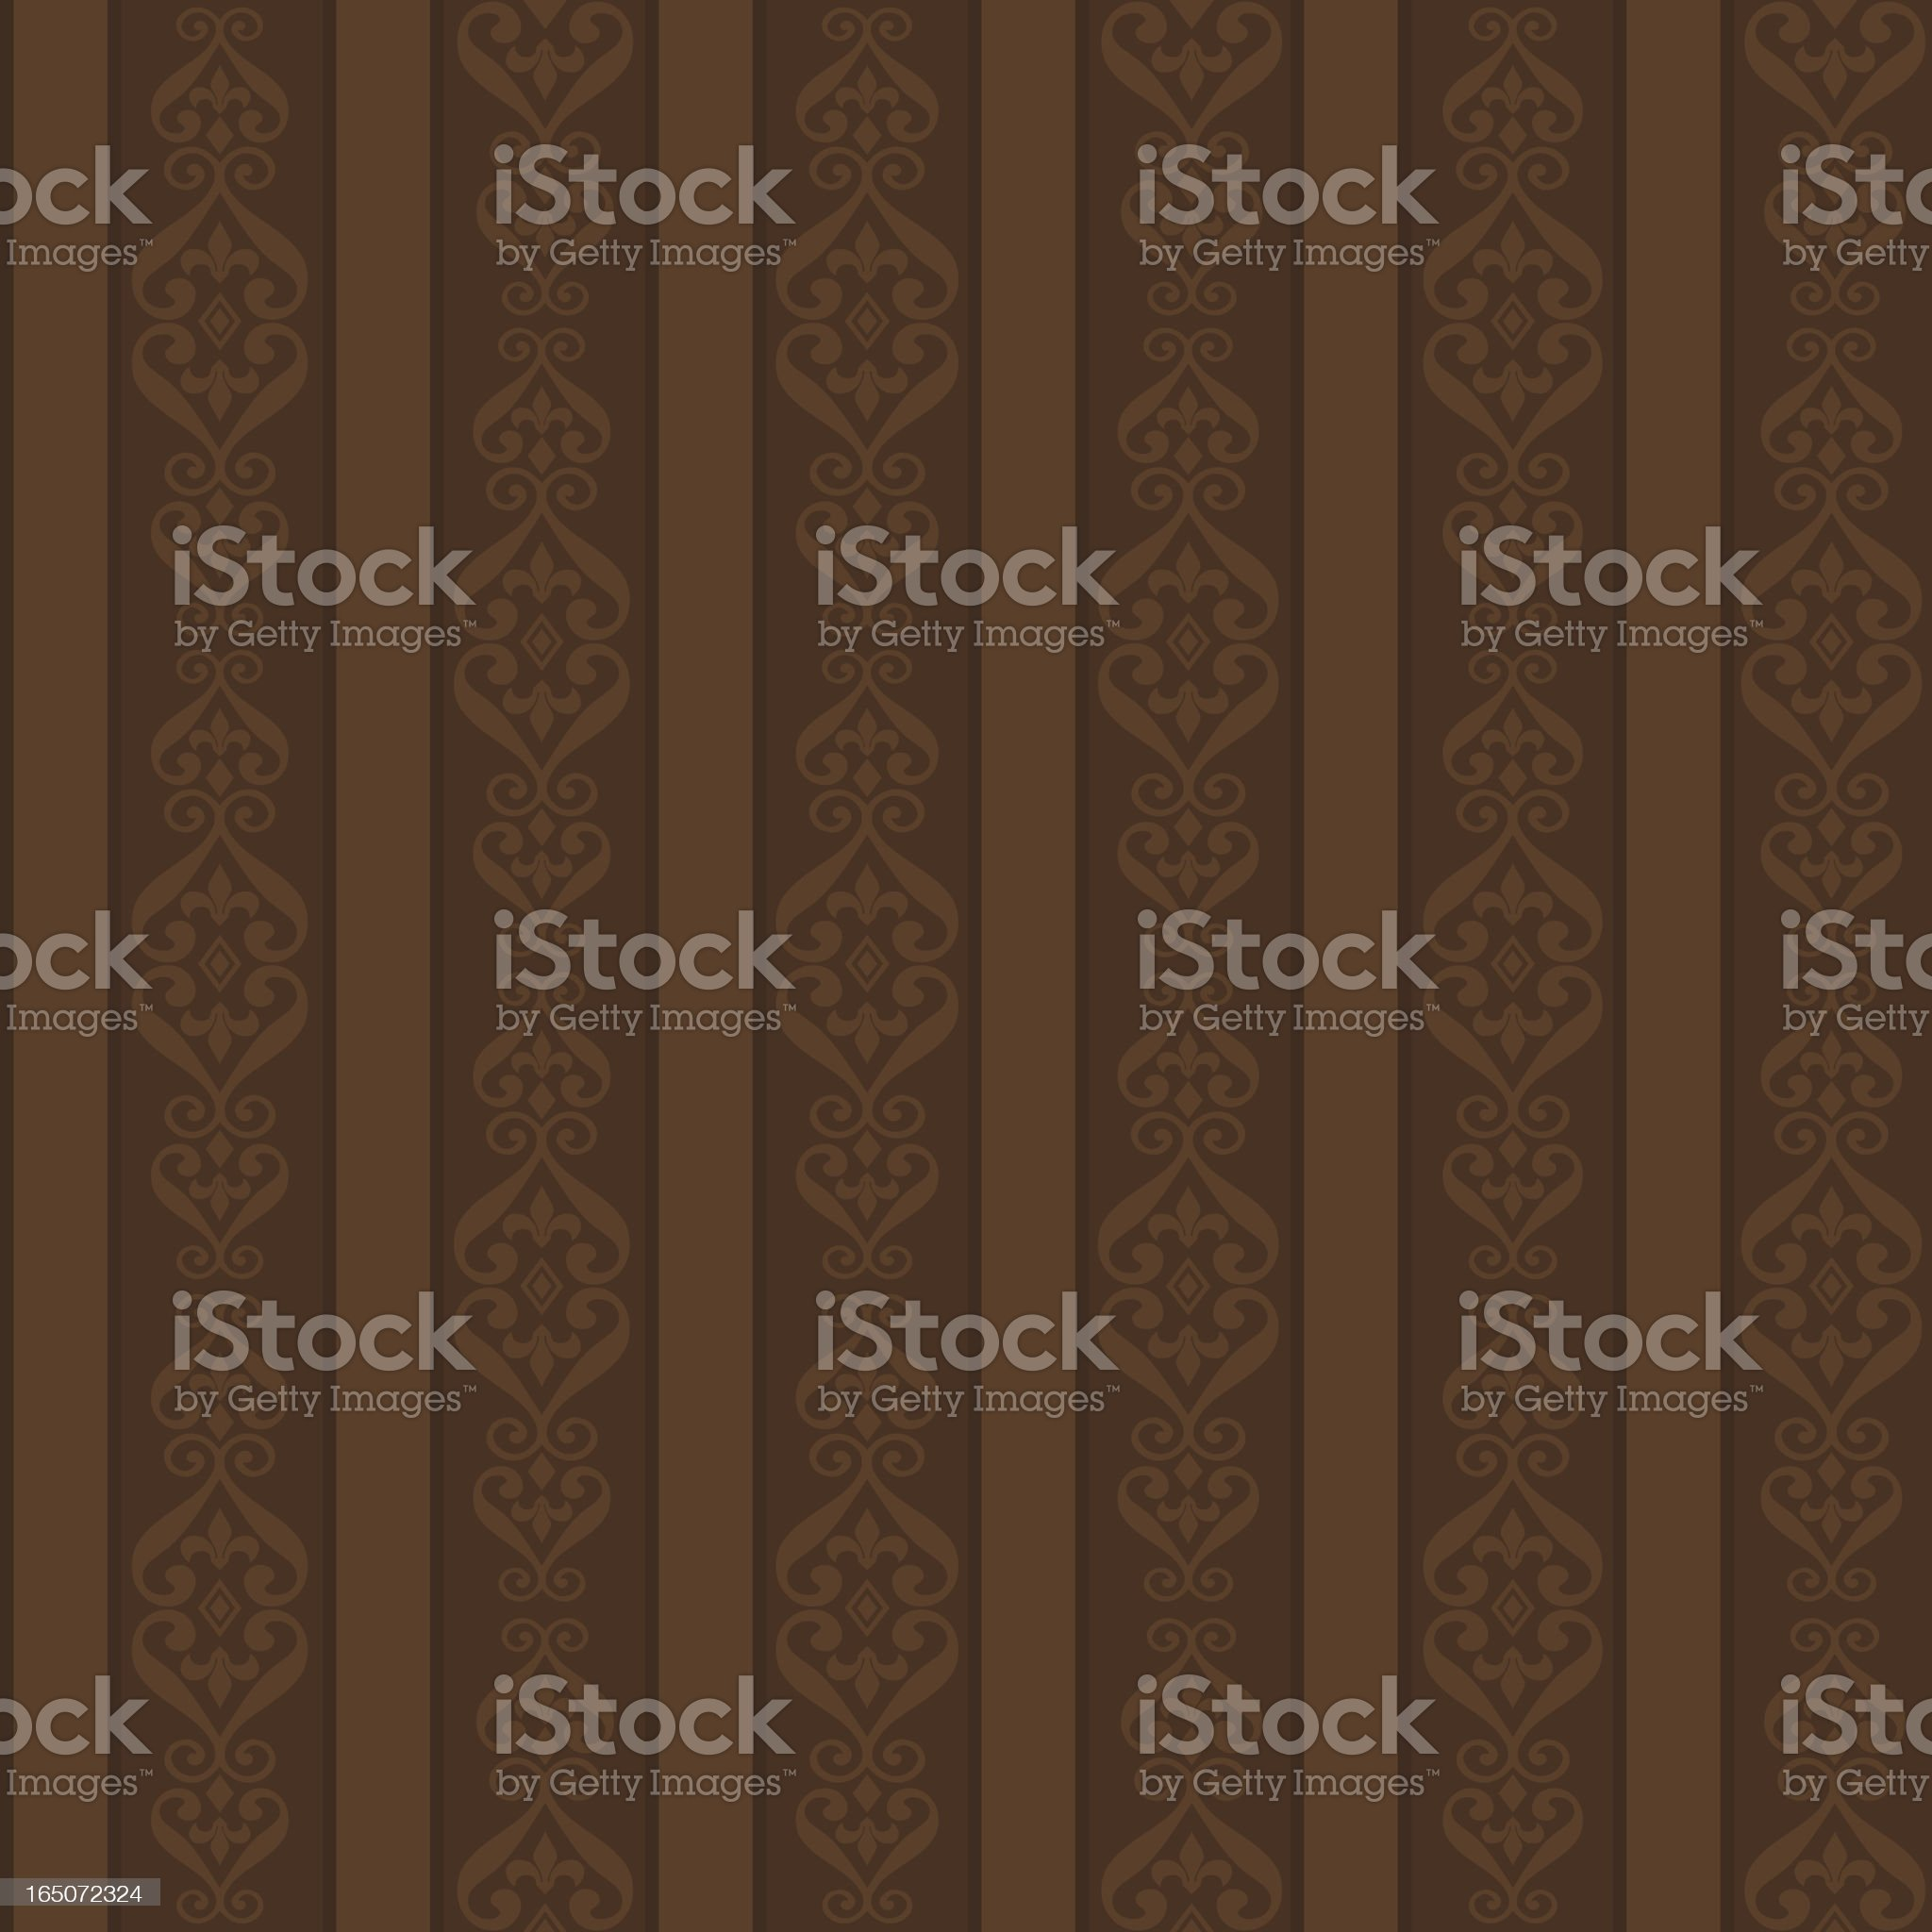 Background - Chocolate Stripes (Seamless) royalty-free stock vector art